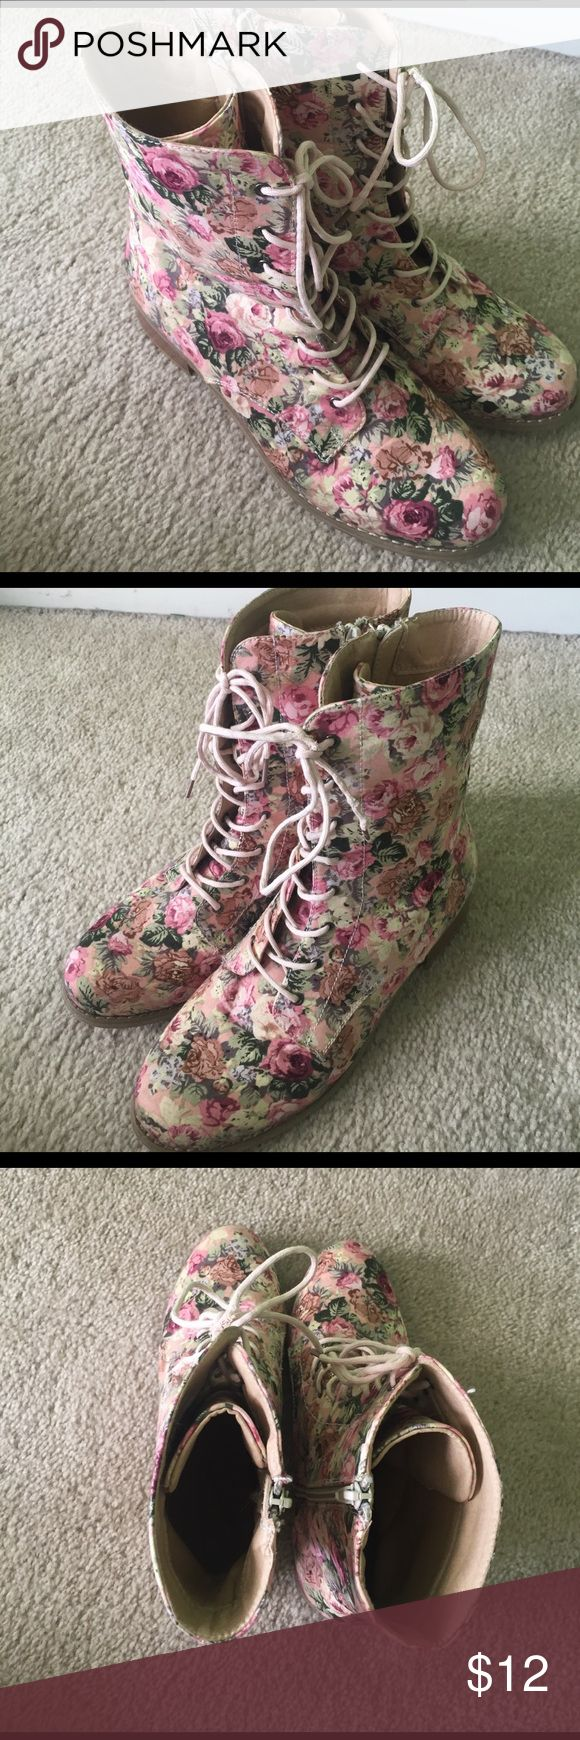 Floral combat boots Combat boots from charlotte russe. Good condition. (Shoe lace on left boot is worn at top and may need replaced). Charlotte Russe Shoes Combat & Moto Boots